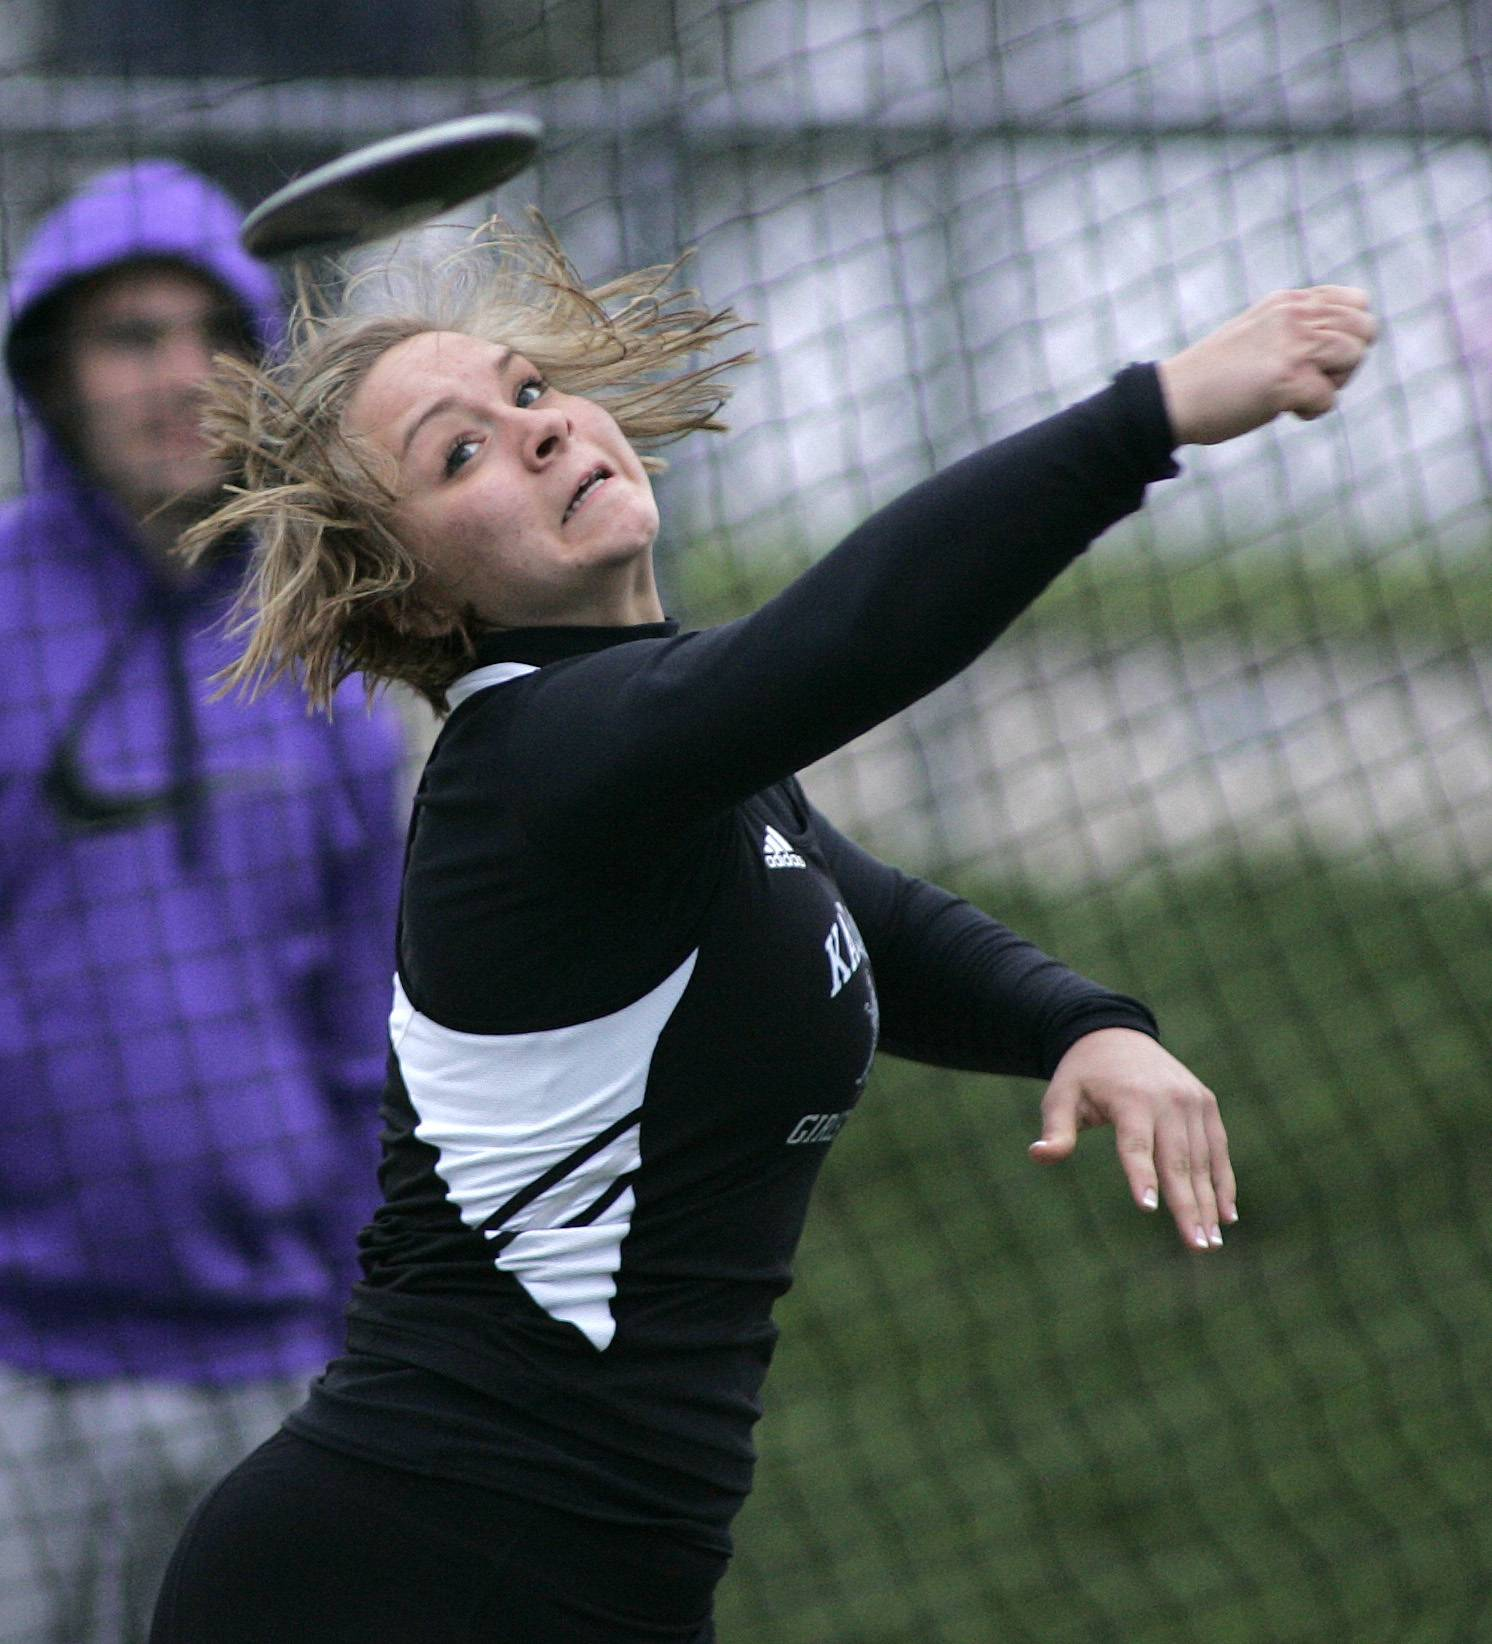 Brian Hill/bhill@dailyherald.com ¬ Kaneland's Elle Tattoni competes in the discus during the Burlington Central girls track sectional Friday.